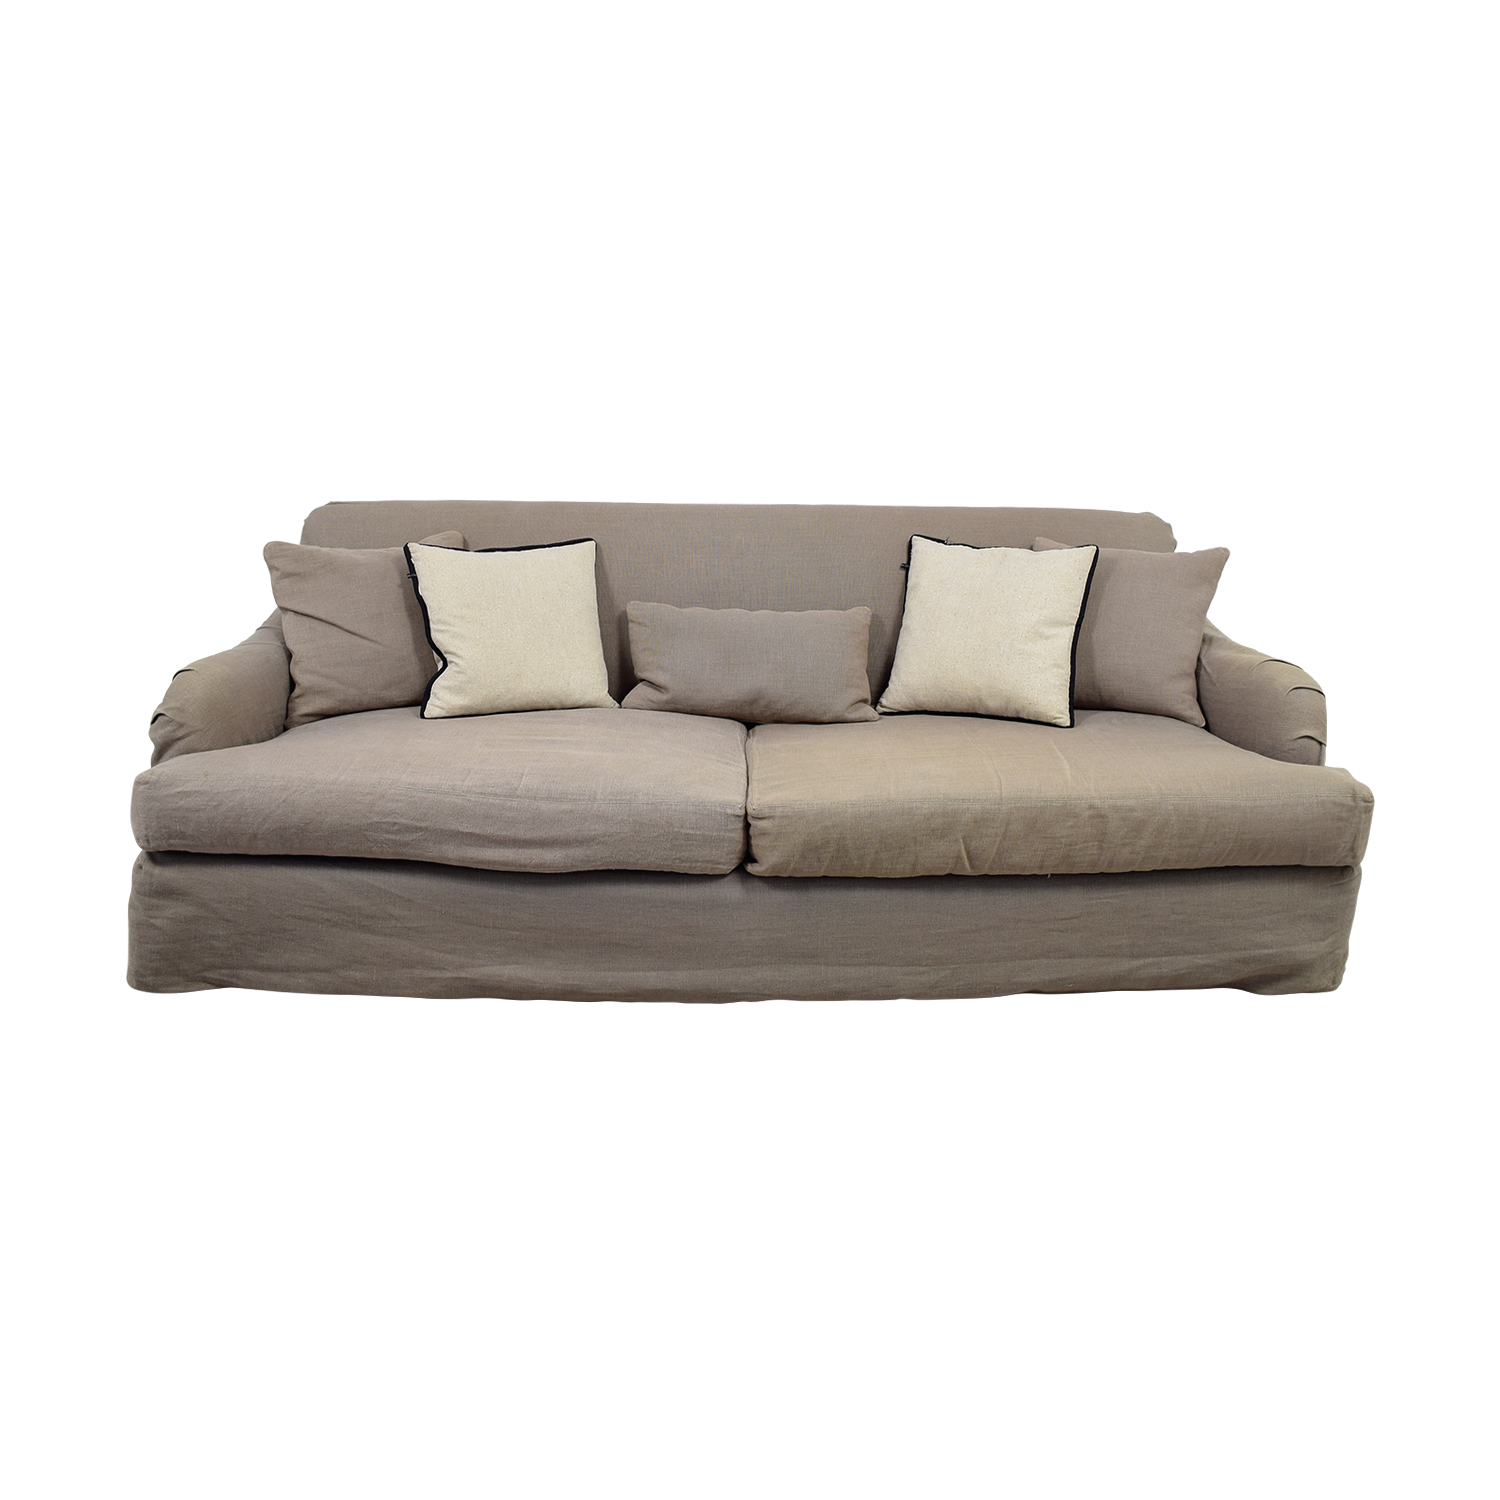 Cisco Brothers  Grey Linen Down Feather Filled Sofa / Sofas